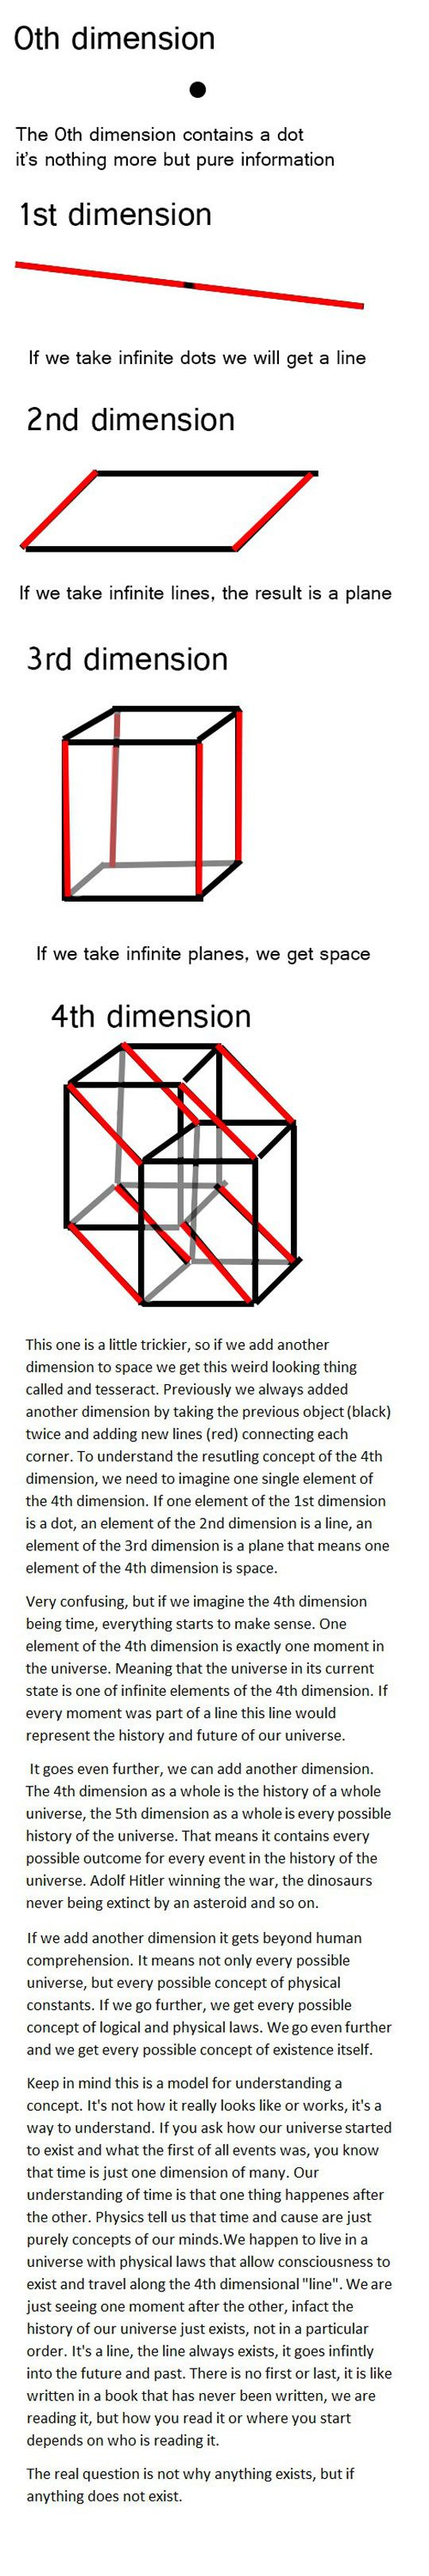 Understanding dimensions.<<< I HAVE BEEN LOOKING FOR THIS